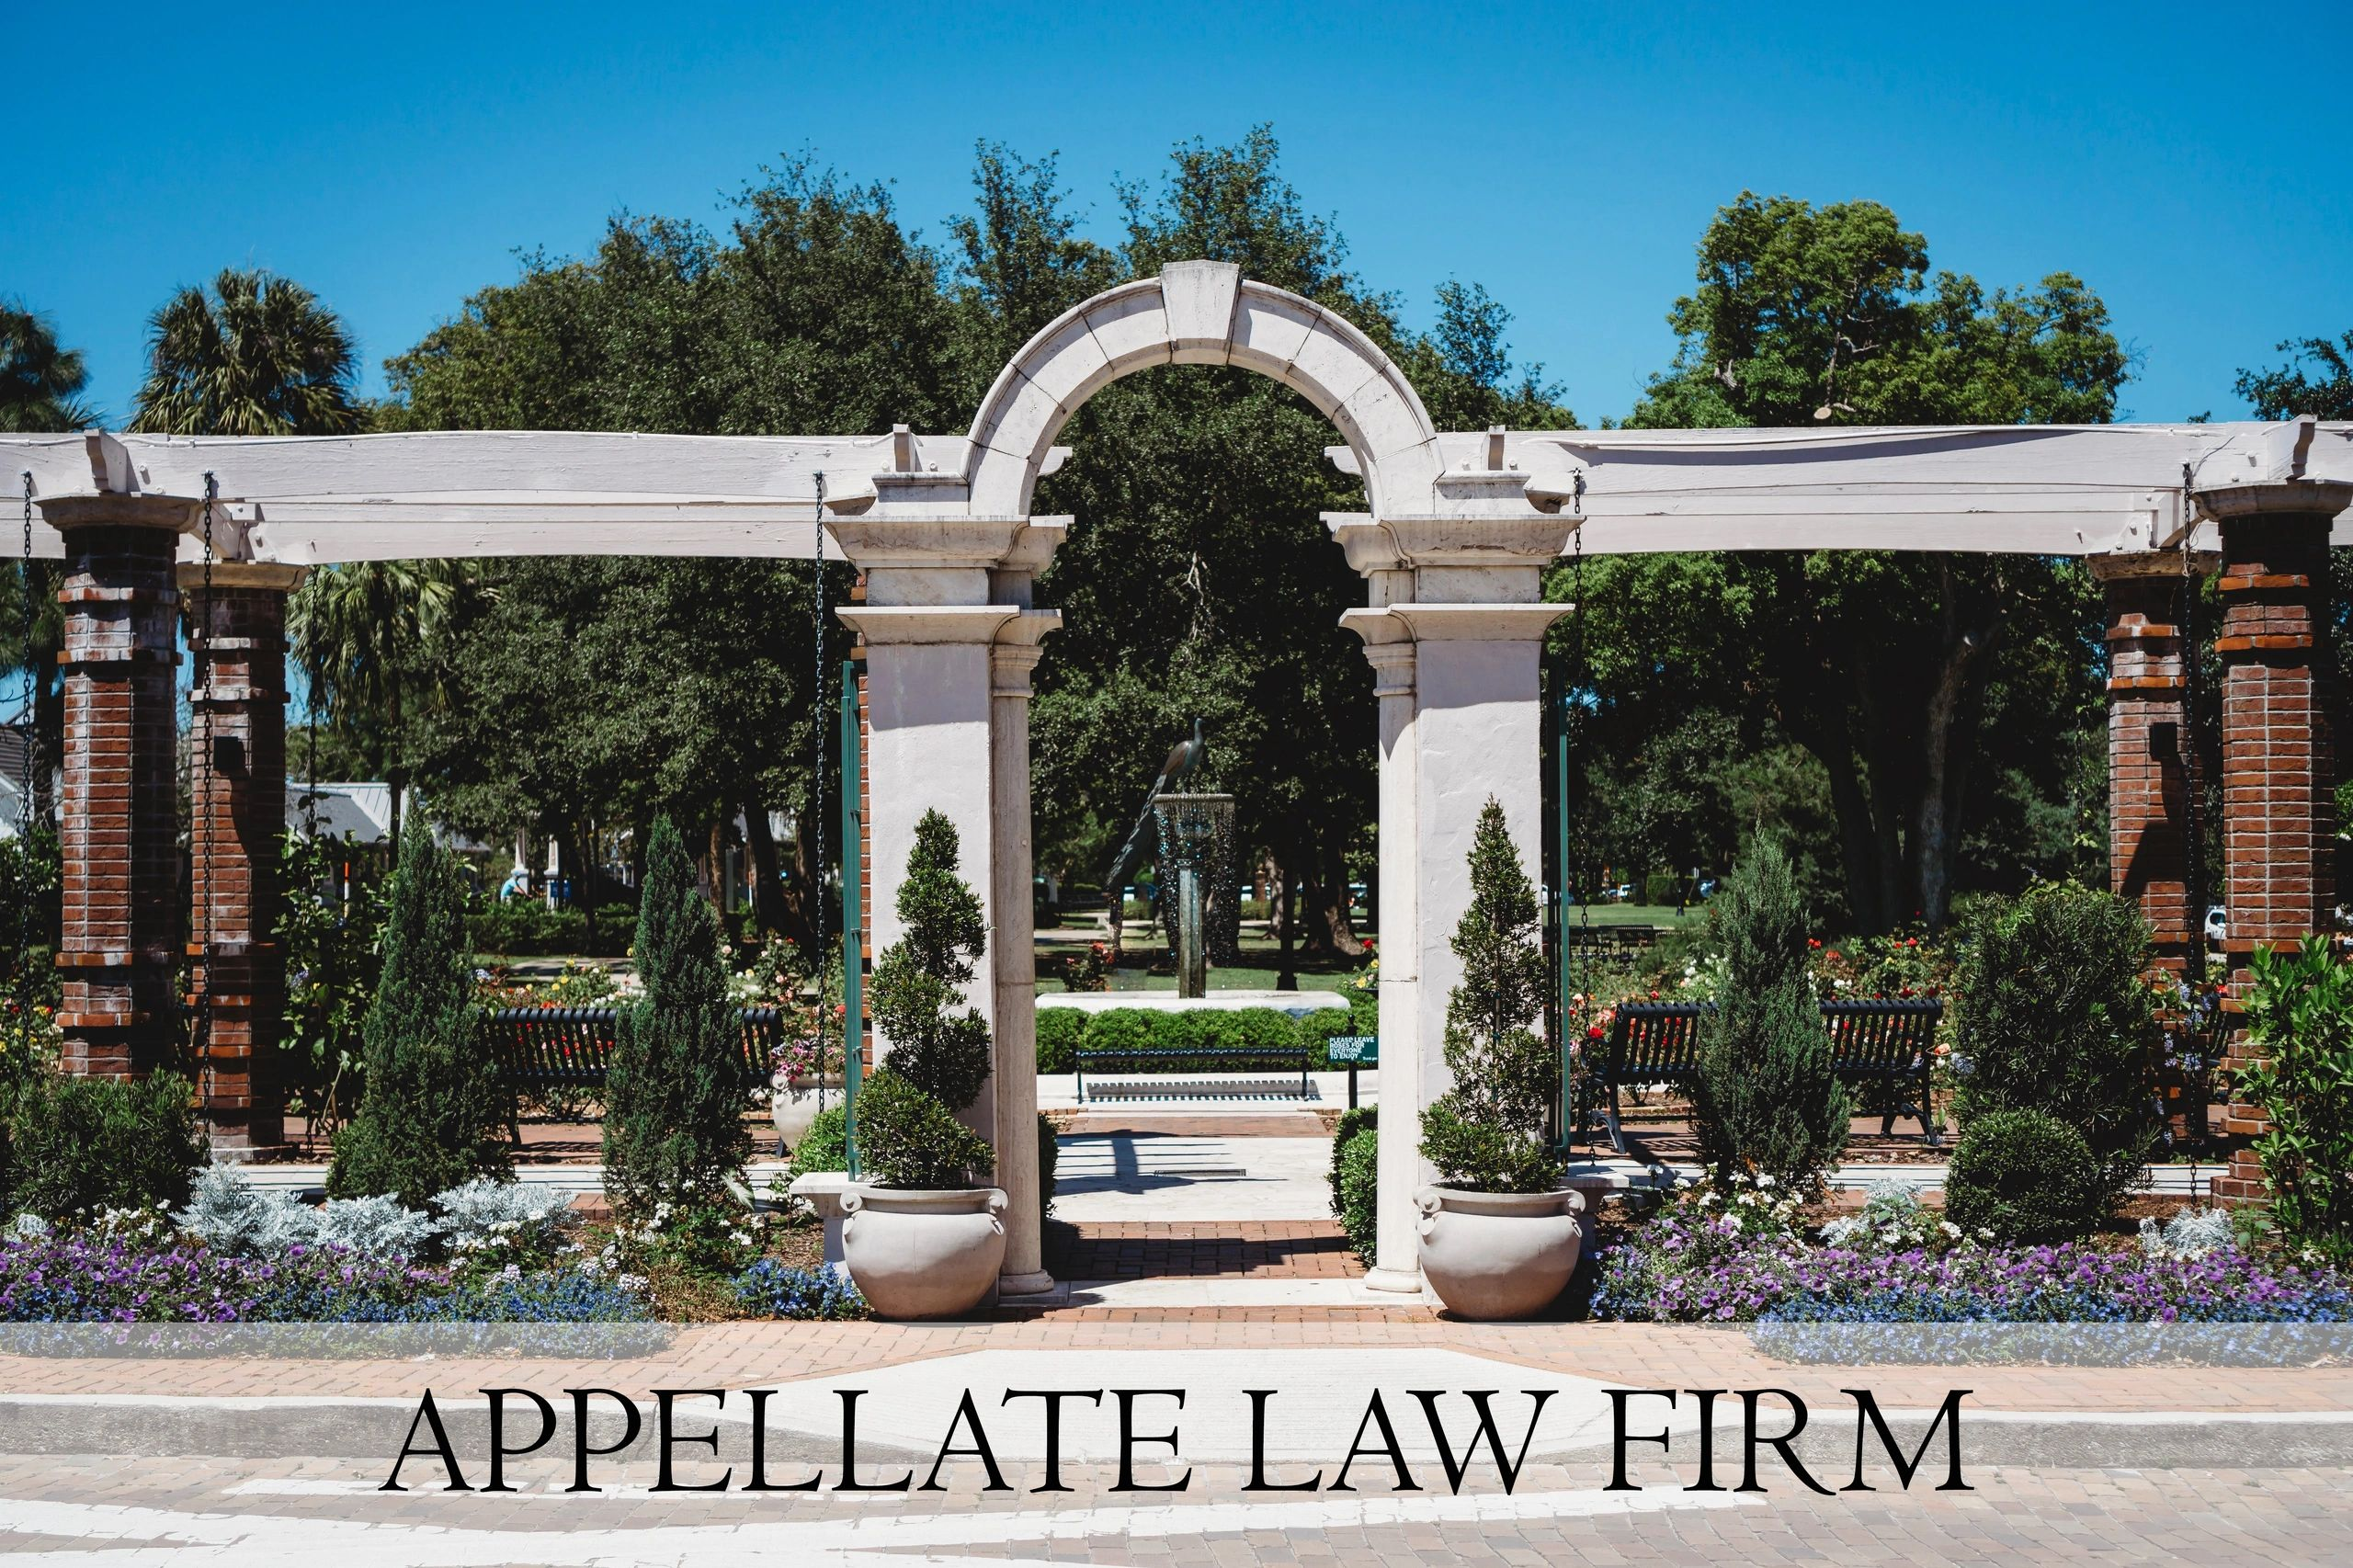 Central Florida Appellate Law Firm, Orlando appellate lawyer, civil appeals throughout Florida